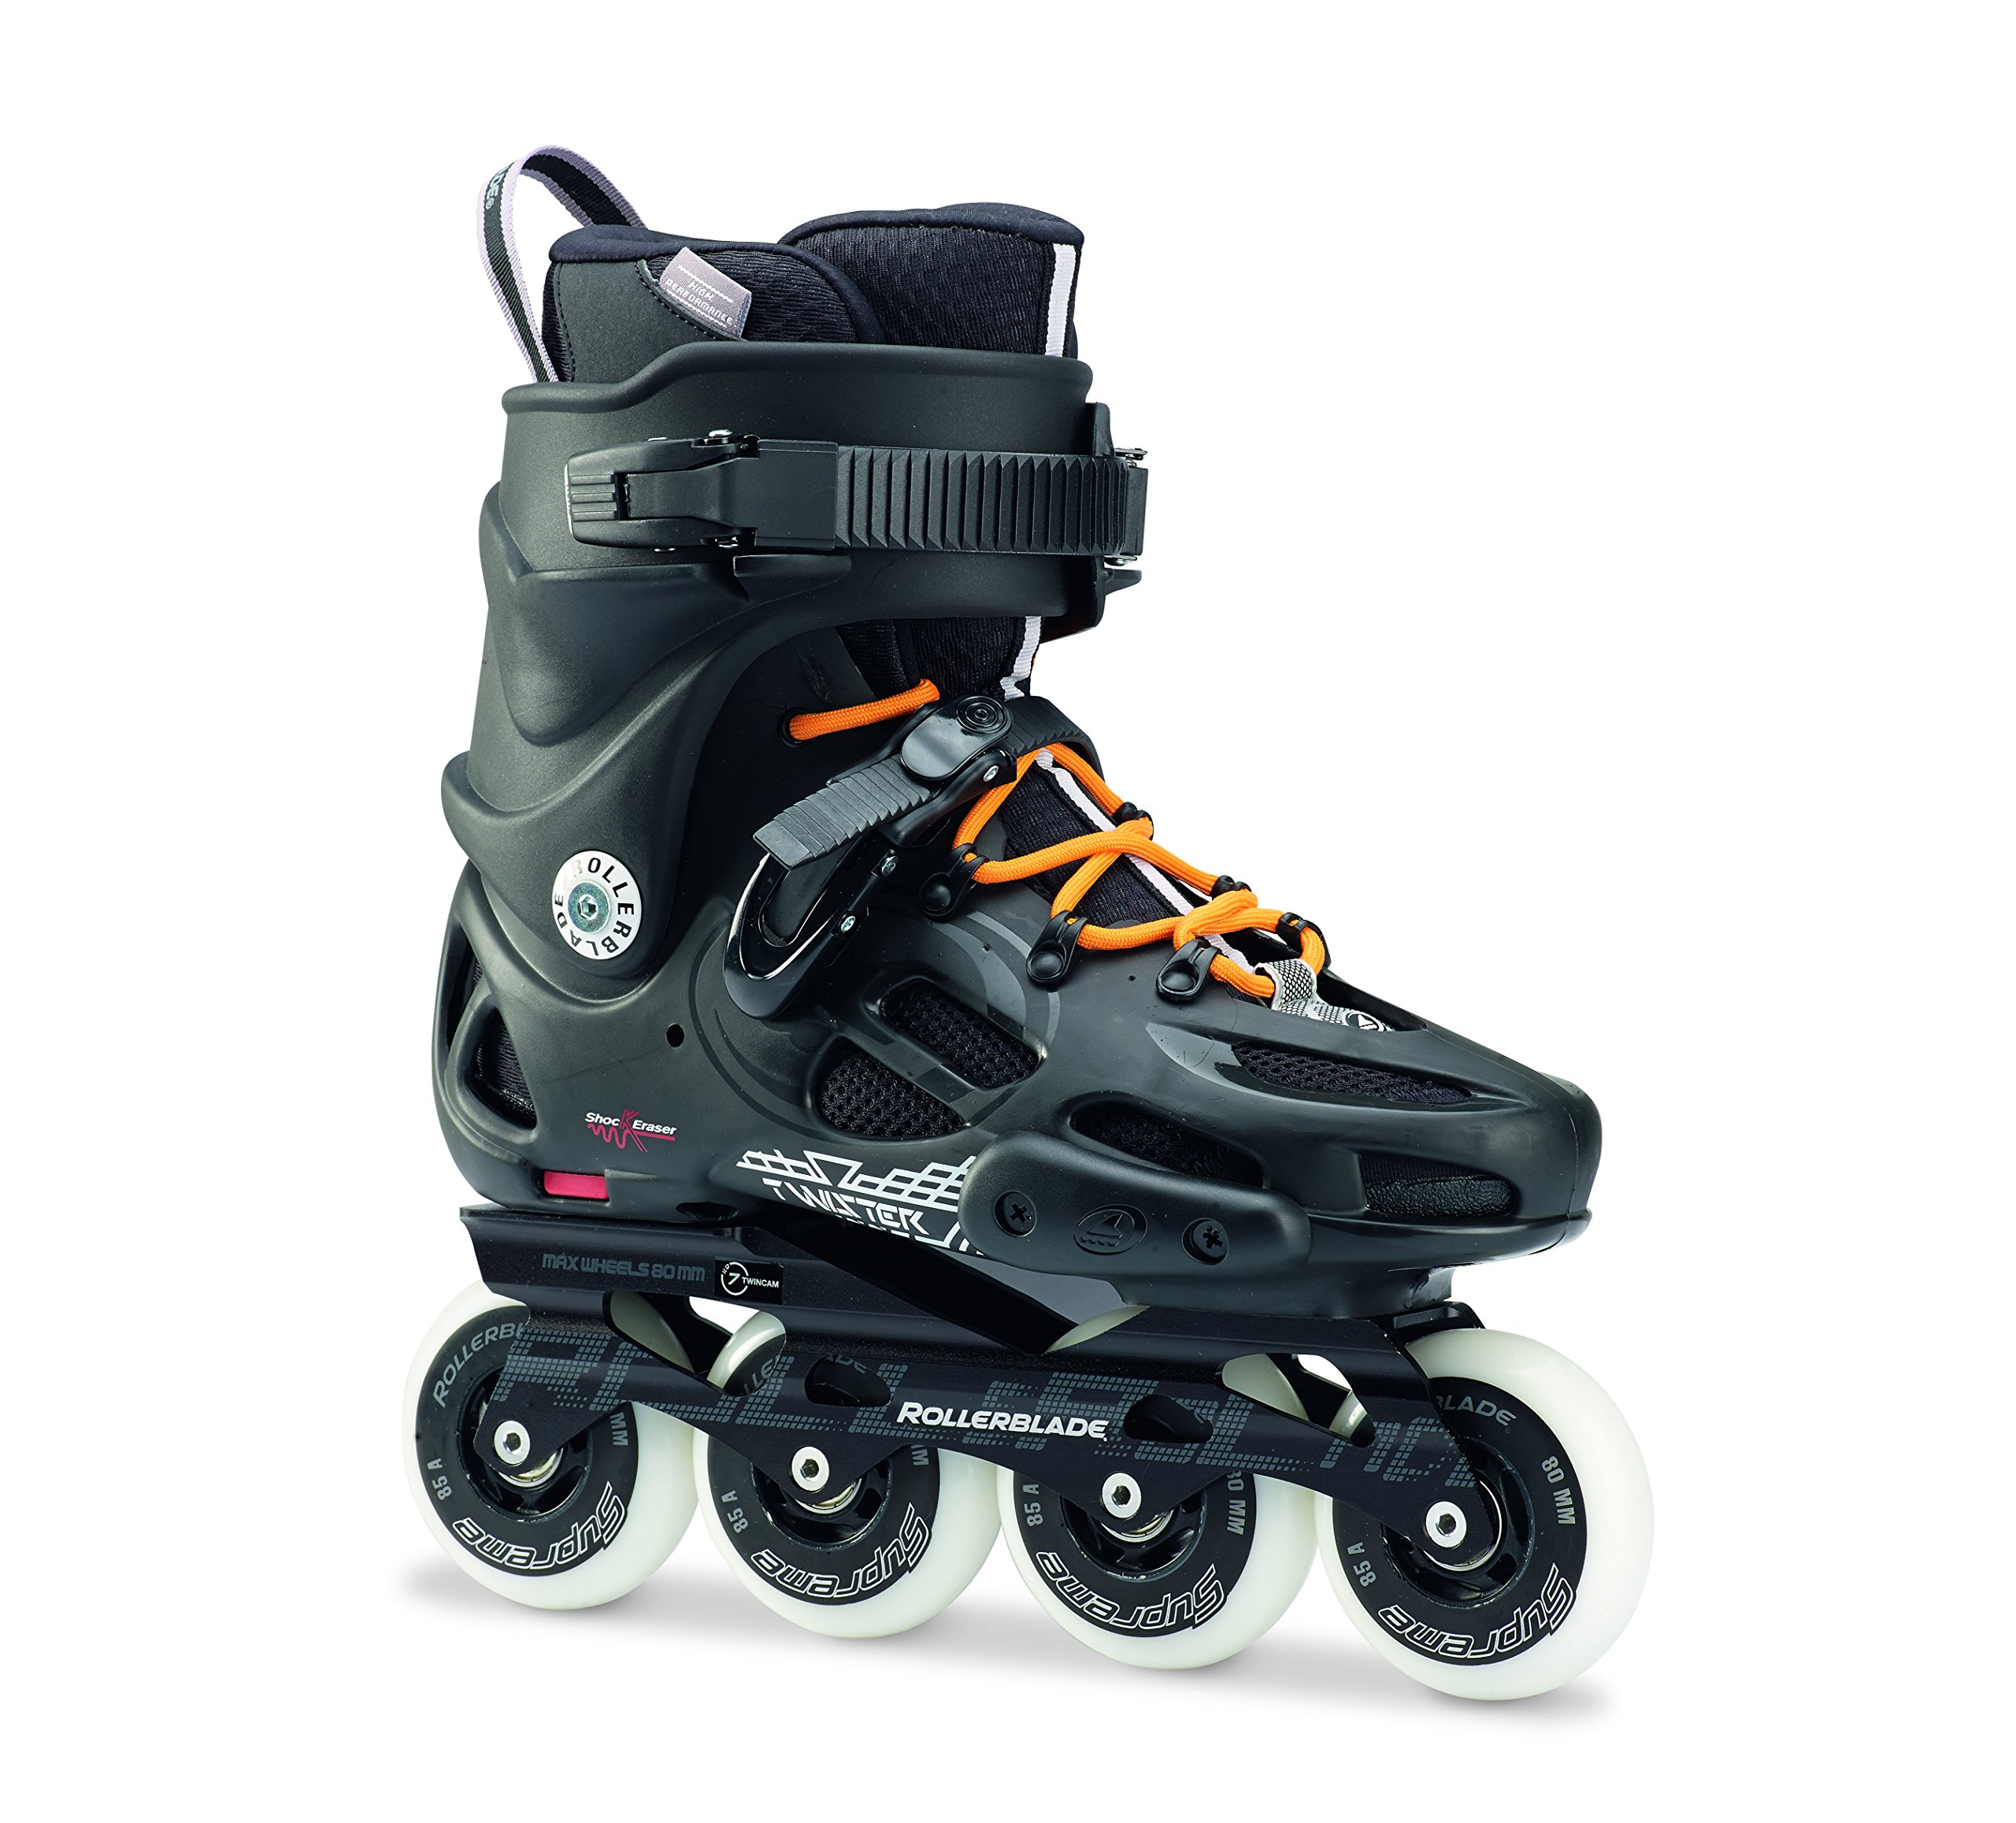 Rollerblade Twister 80 Twincam ILQ 7 Plus Bearings Inline Skates, Black/Urban Orange, US Men's 10.5 by Rollerblade